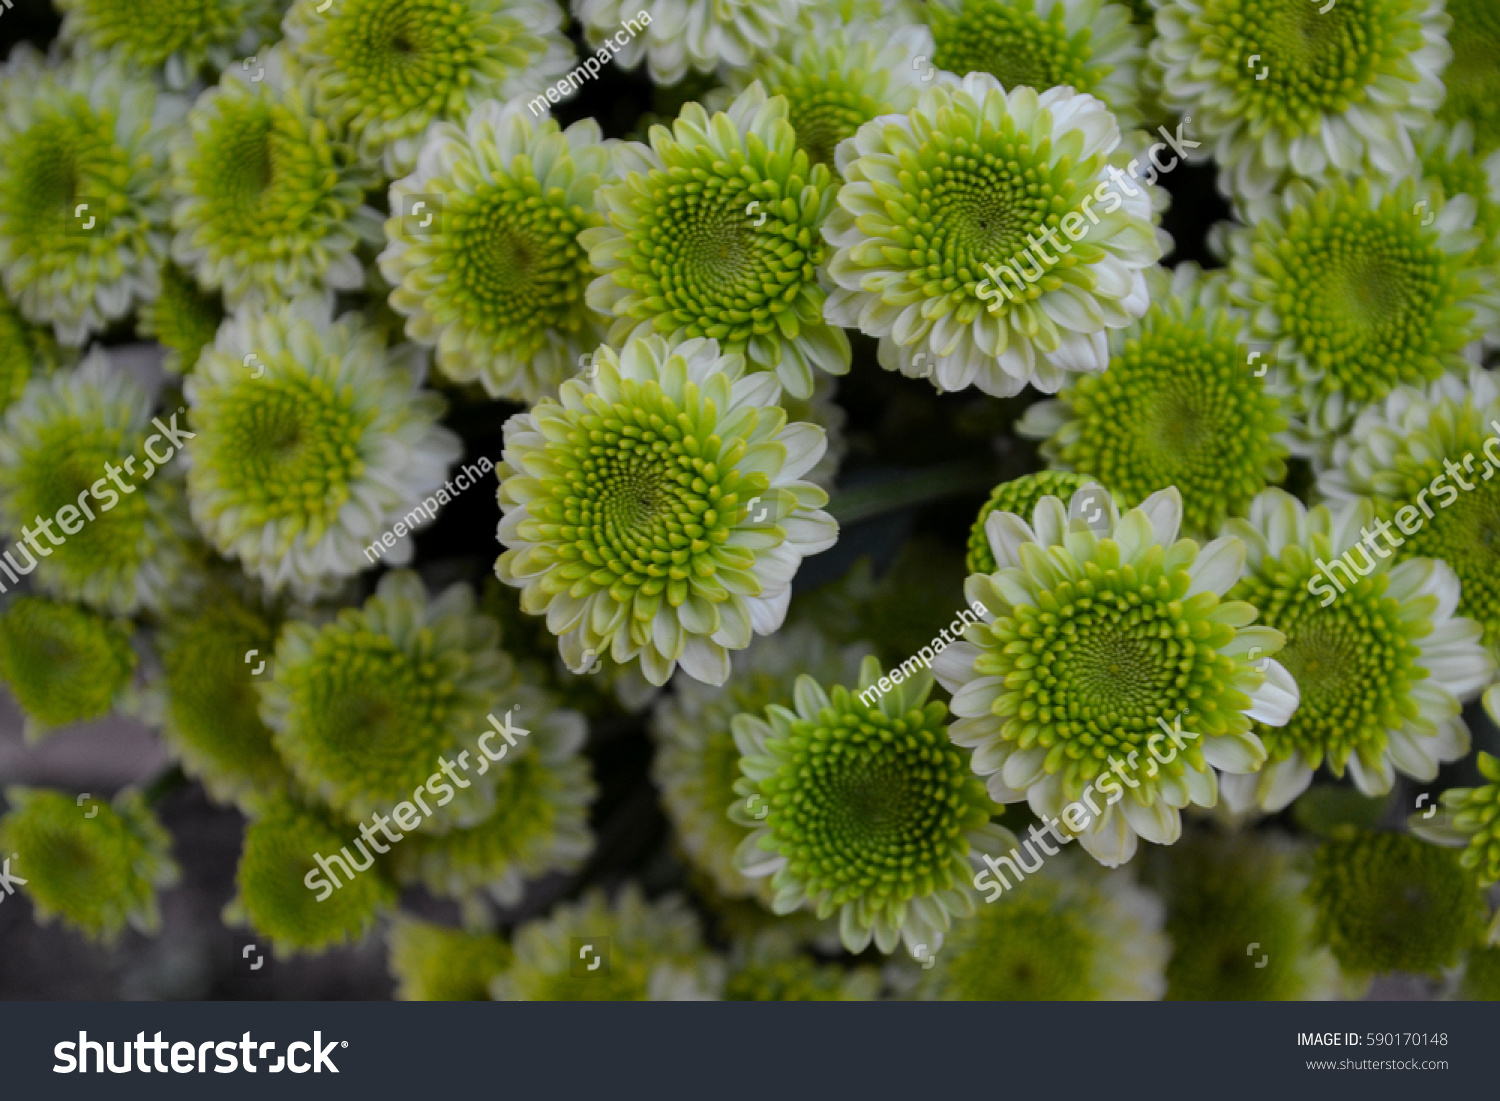 These green white flowers called chrysanthemum stock photo edit now these are green and white flowers called chrysanthemum or florists mun or mums flowers and mightylinksfo